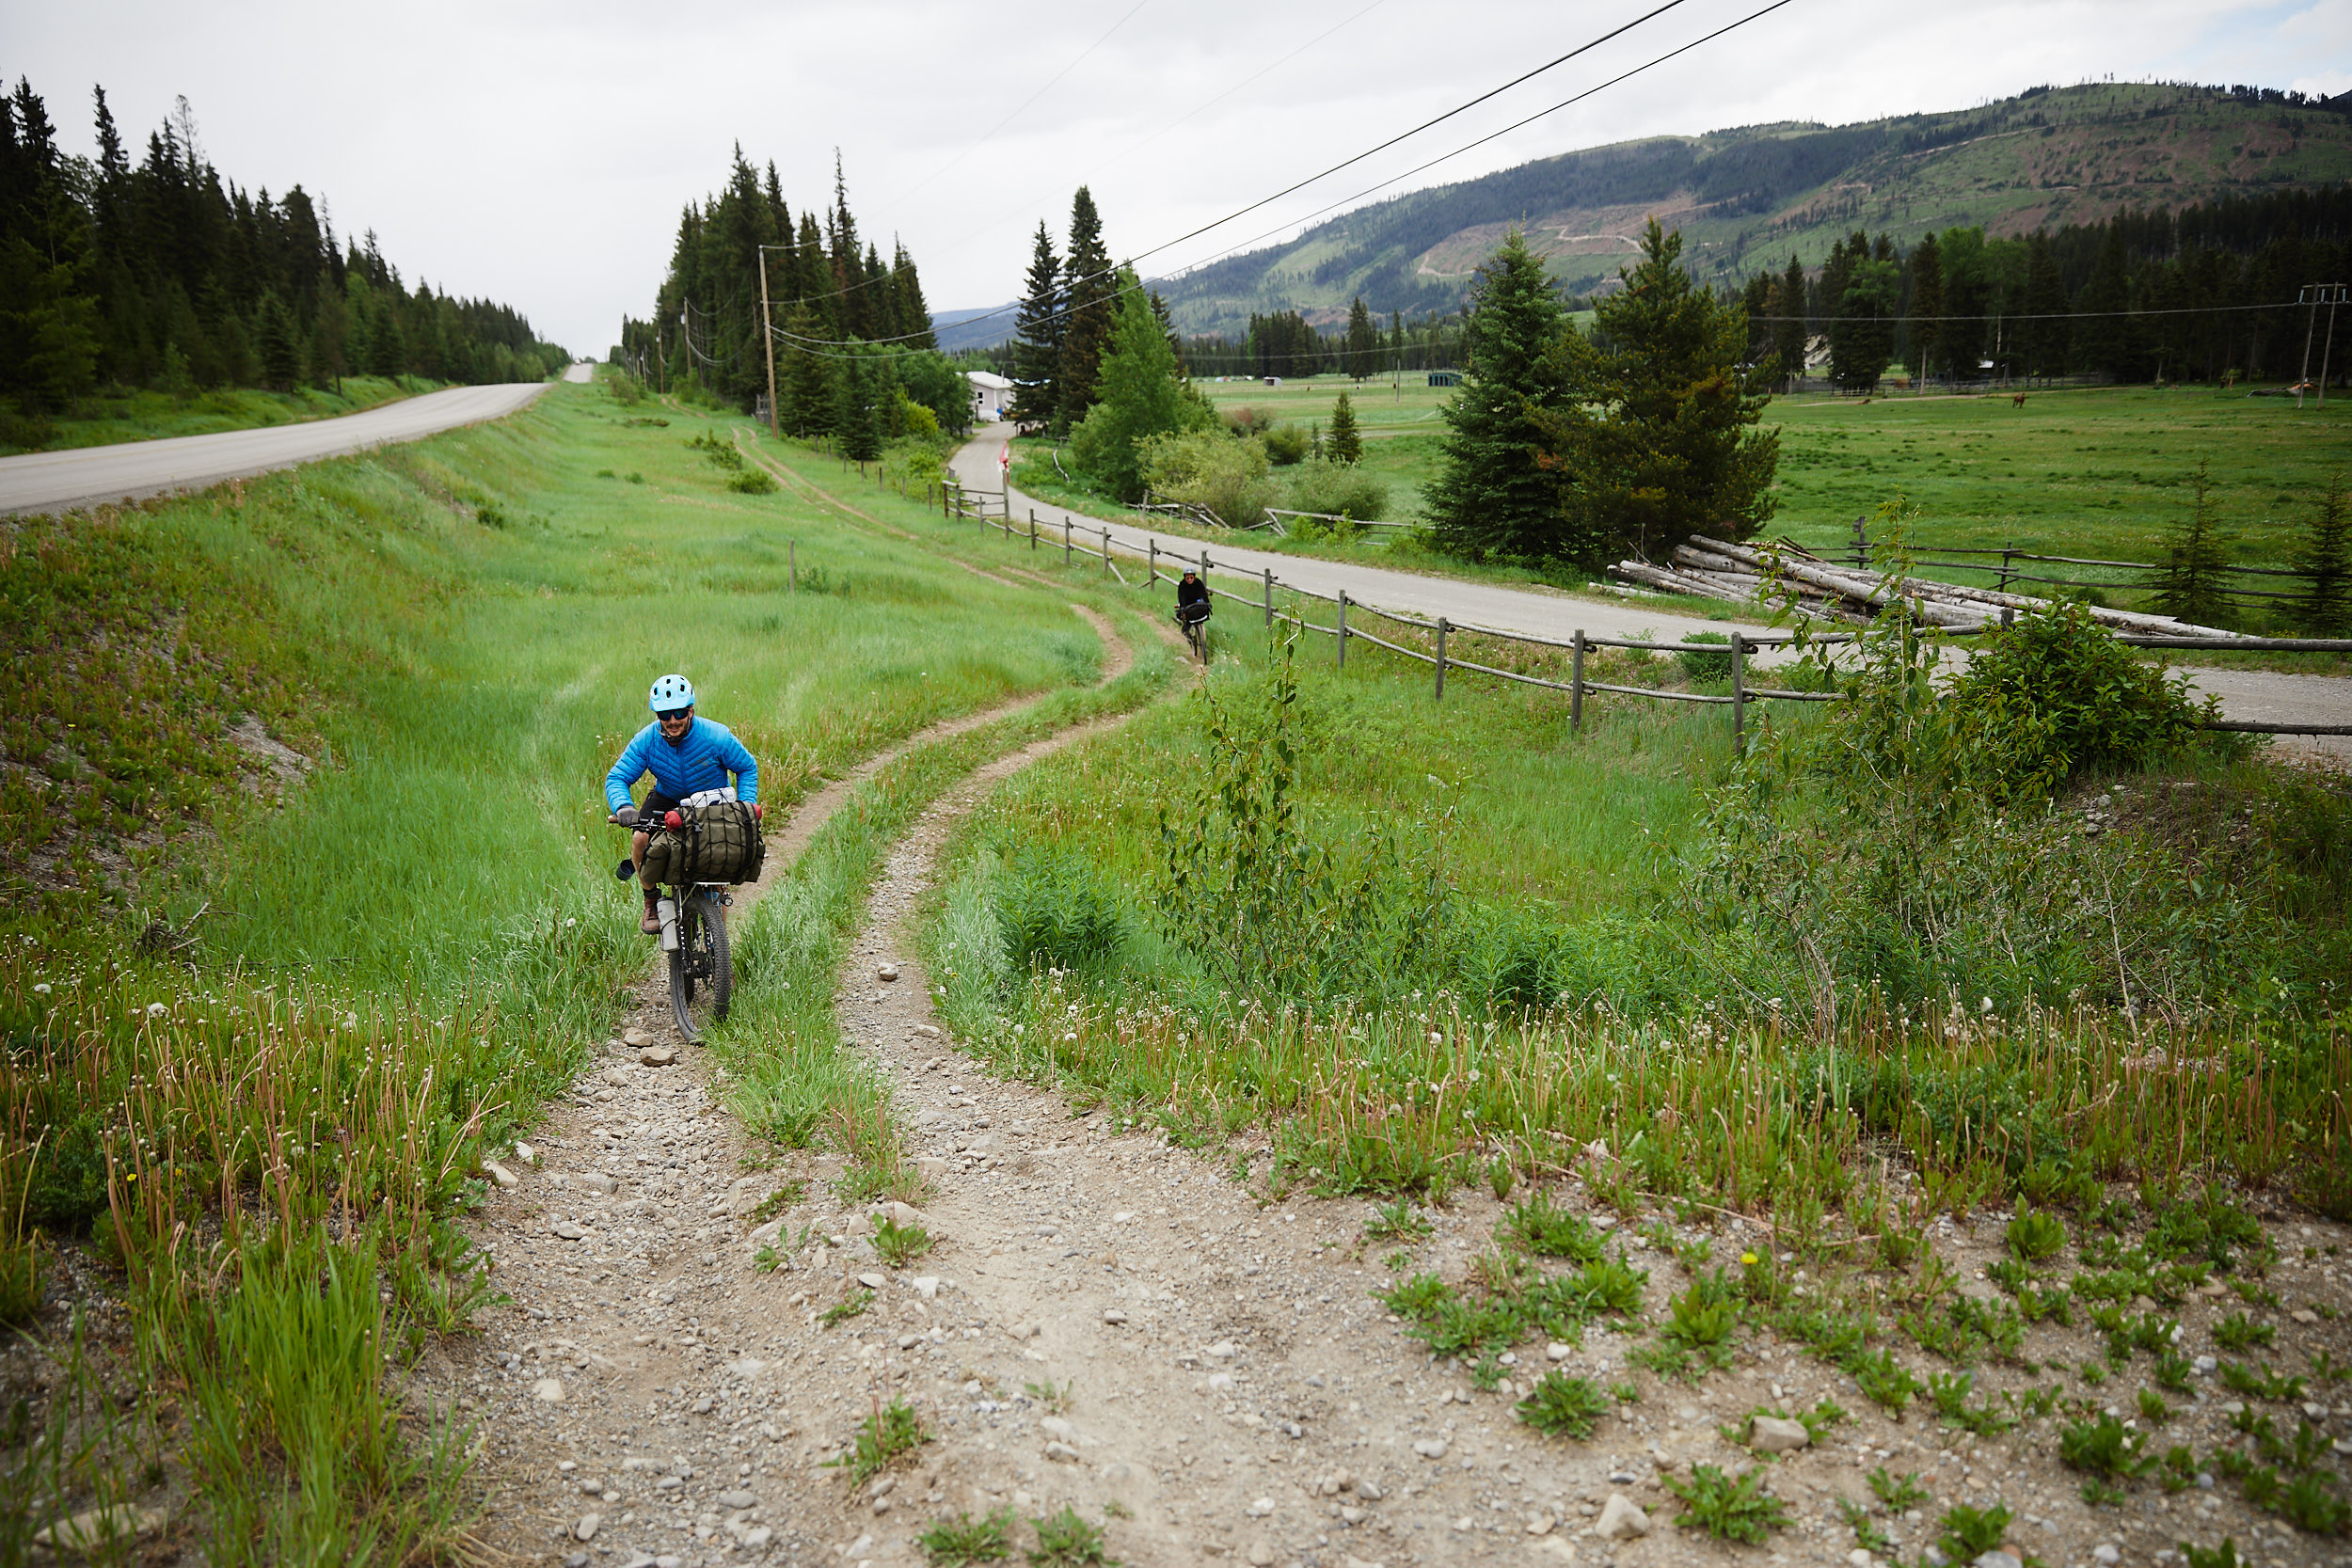 We began to make our way toward our next camp site which was just outside of Fernie